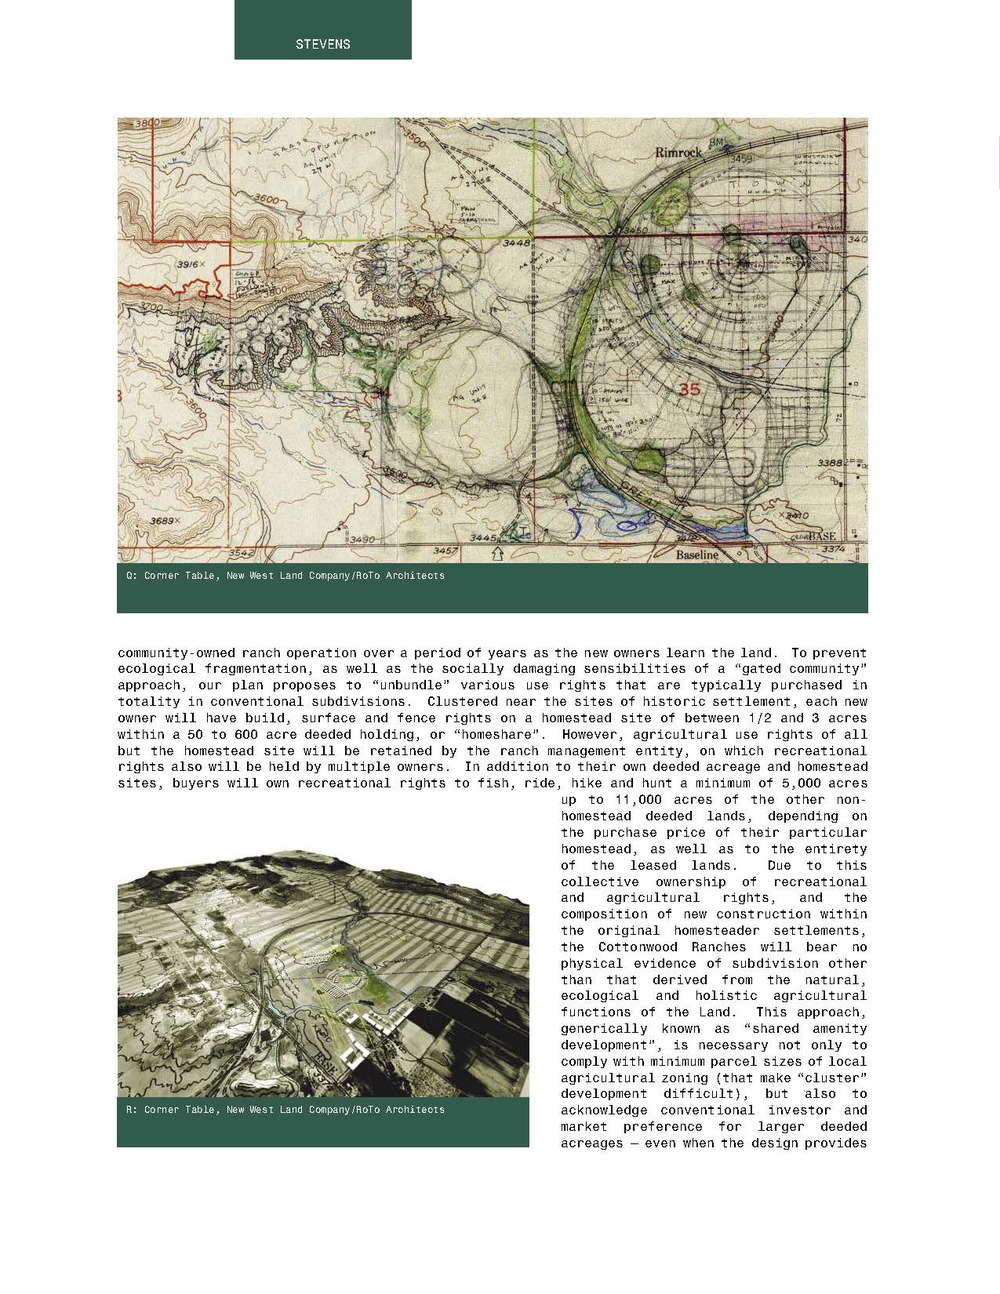 UT New West Land Co Article_Page_21.jpg